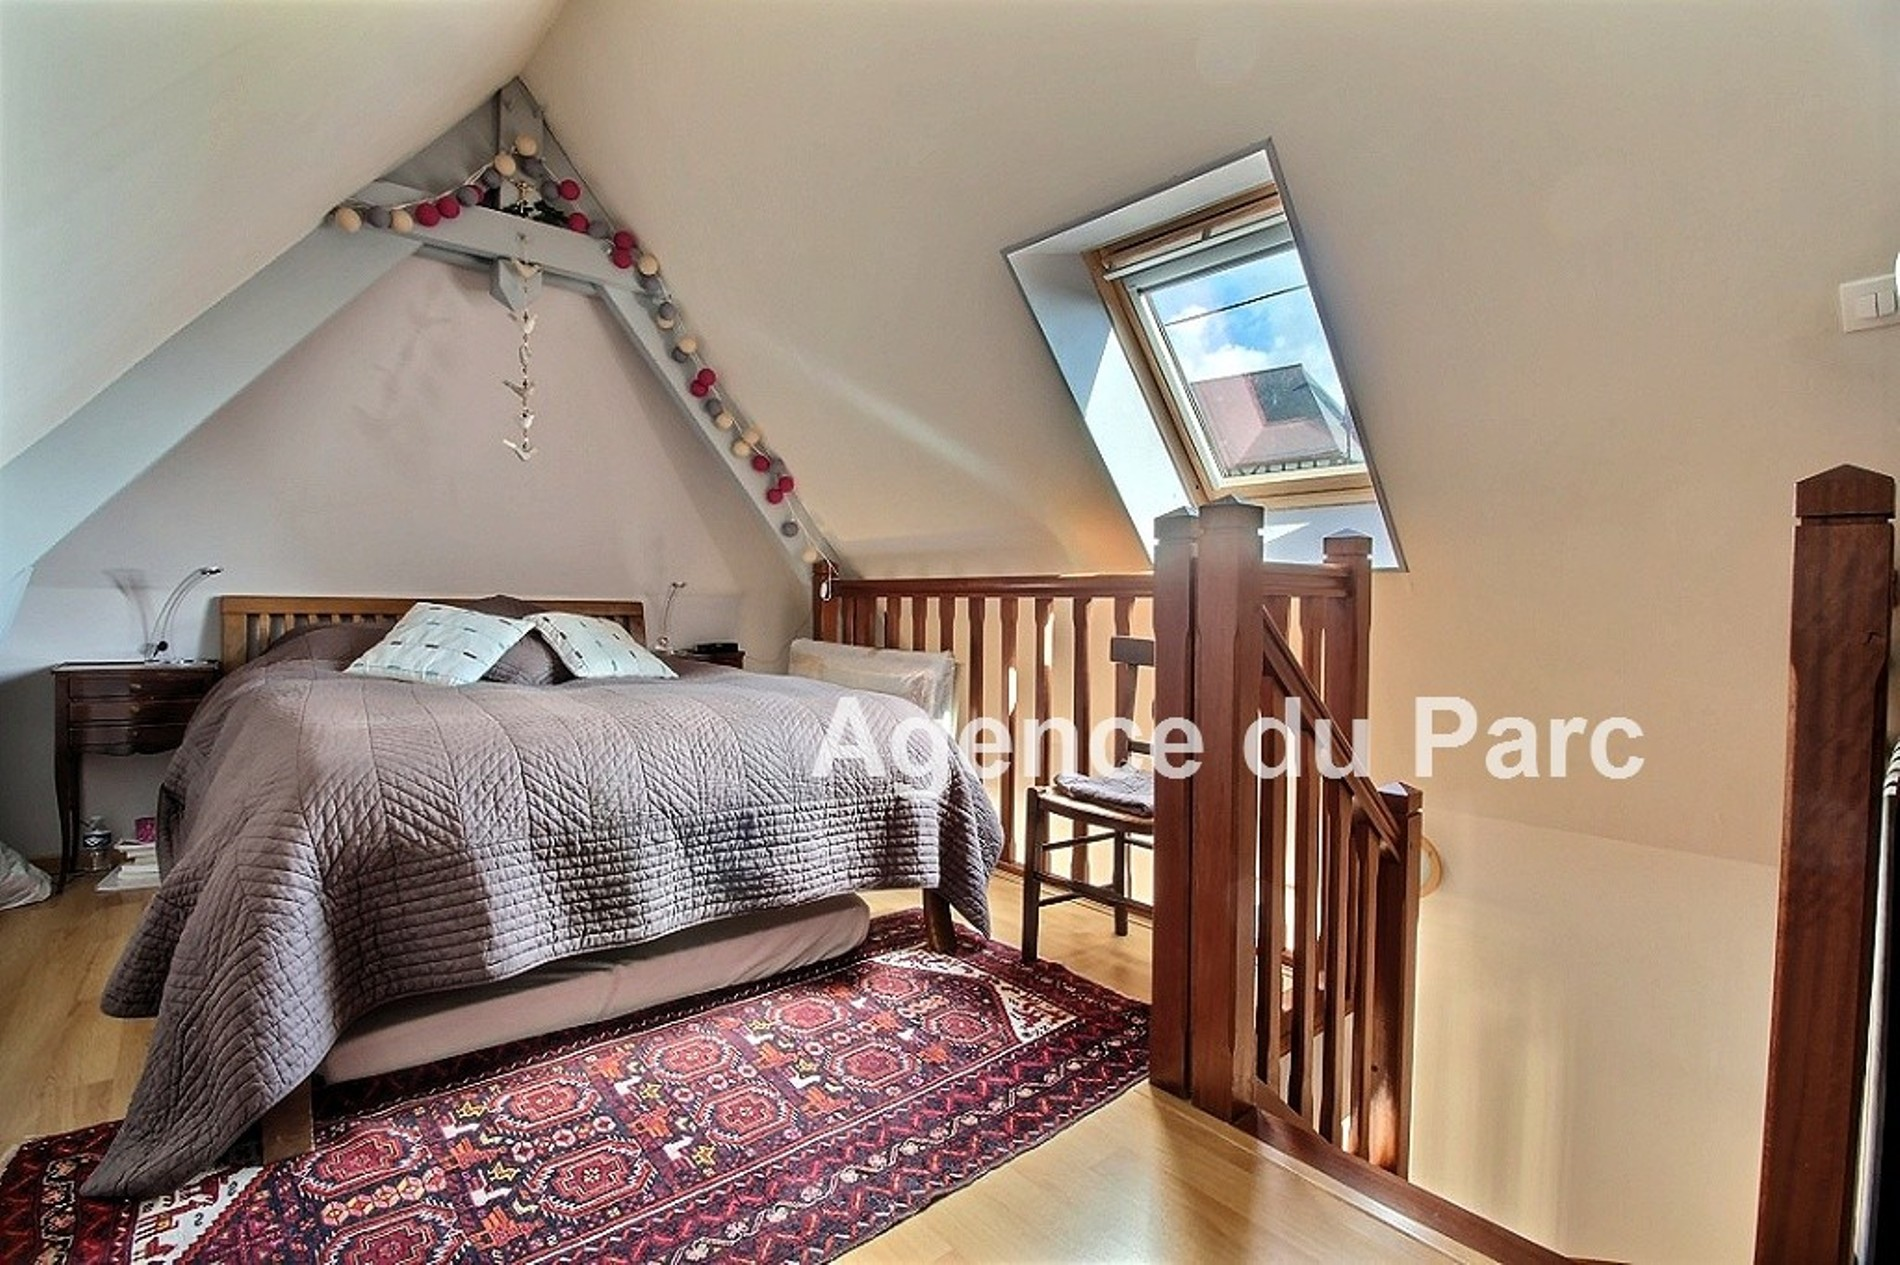 Maison de campagne proche paris parking 12 m id fu2026 for Acheter une maison a paris